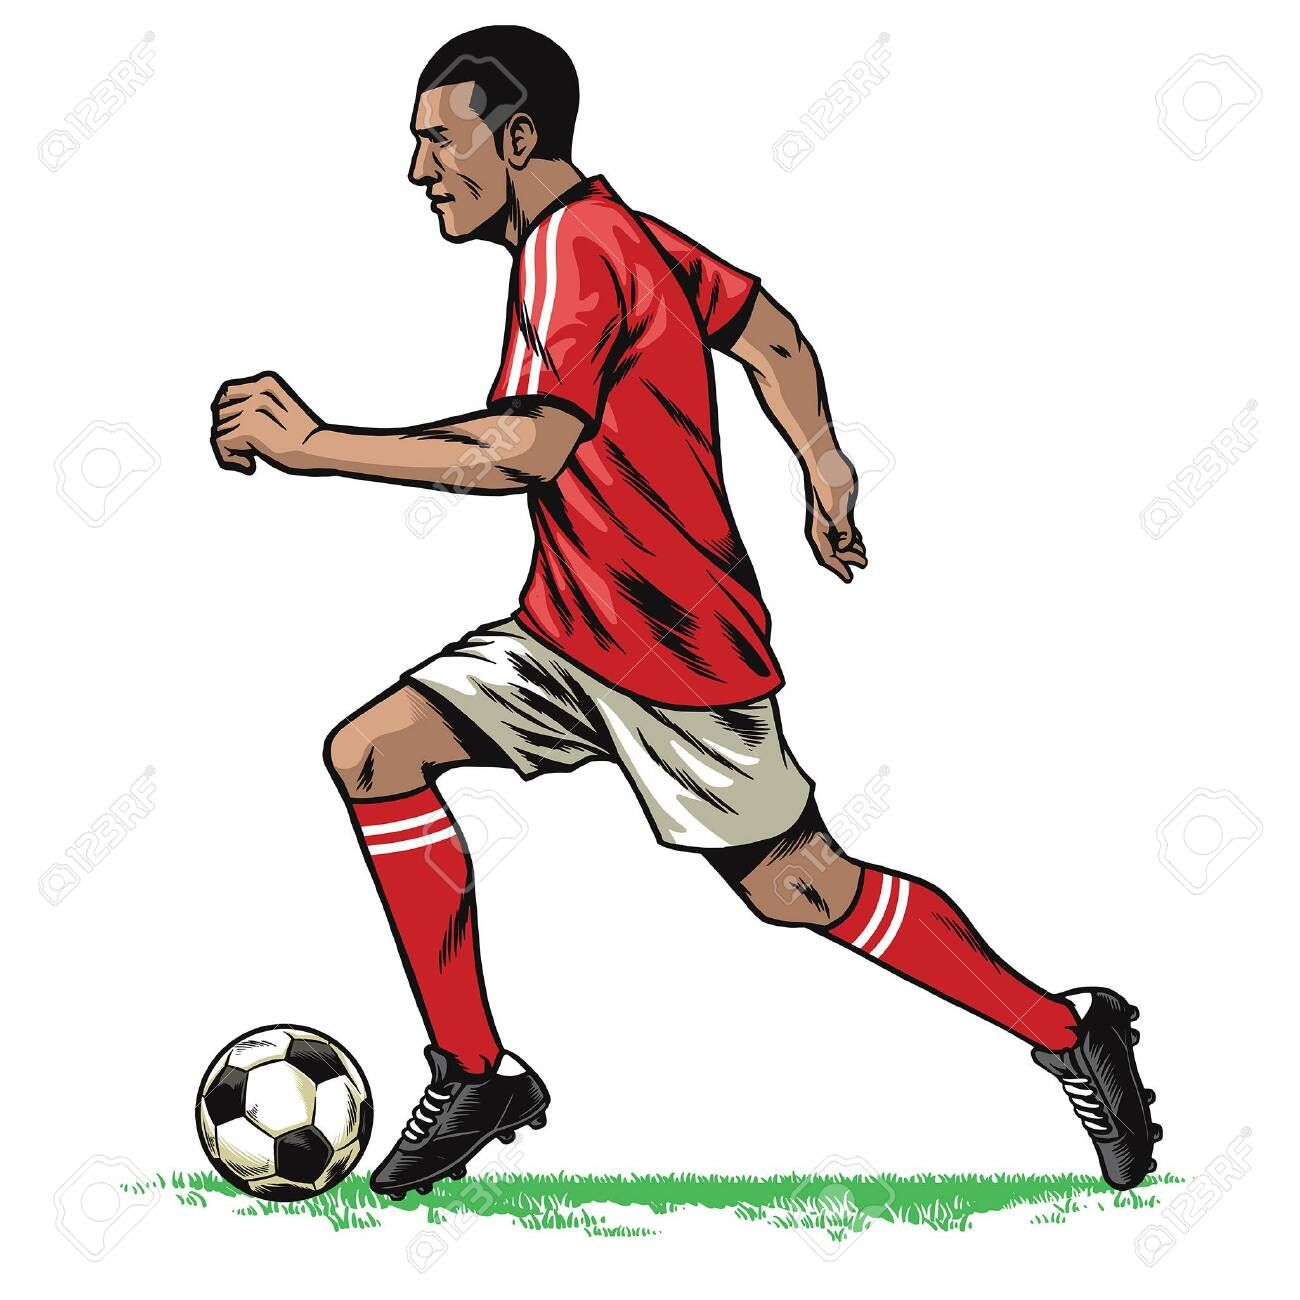 Hand Drawing Of Soccer Player Running While Dribble The Ball Sponsored Soccer Drawing Hand Player Ball How To Draw Hands Soccer Players Superhero